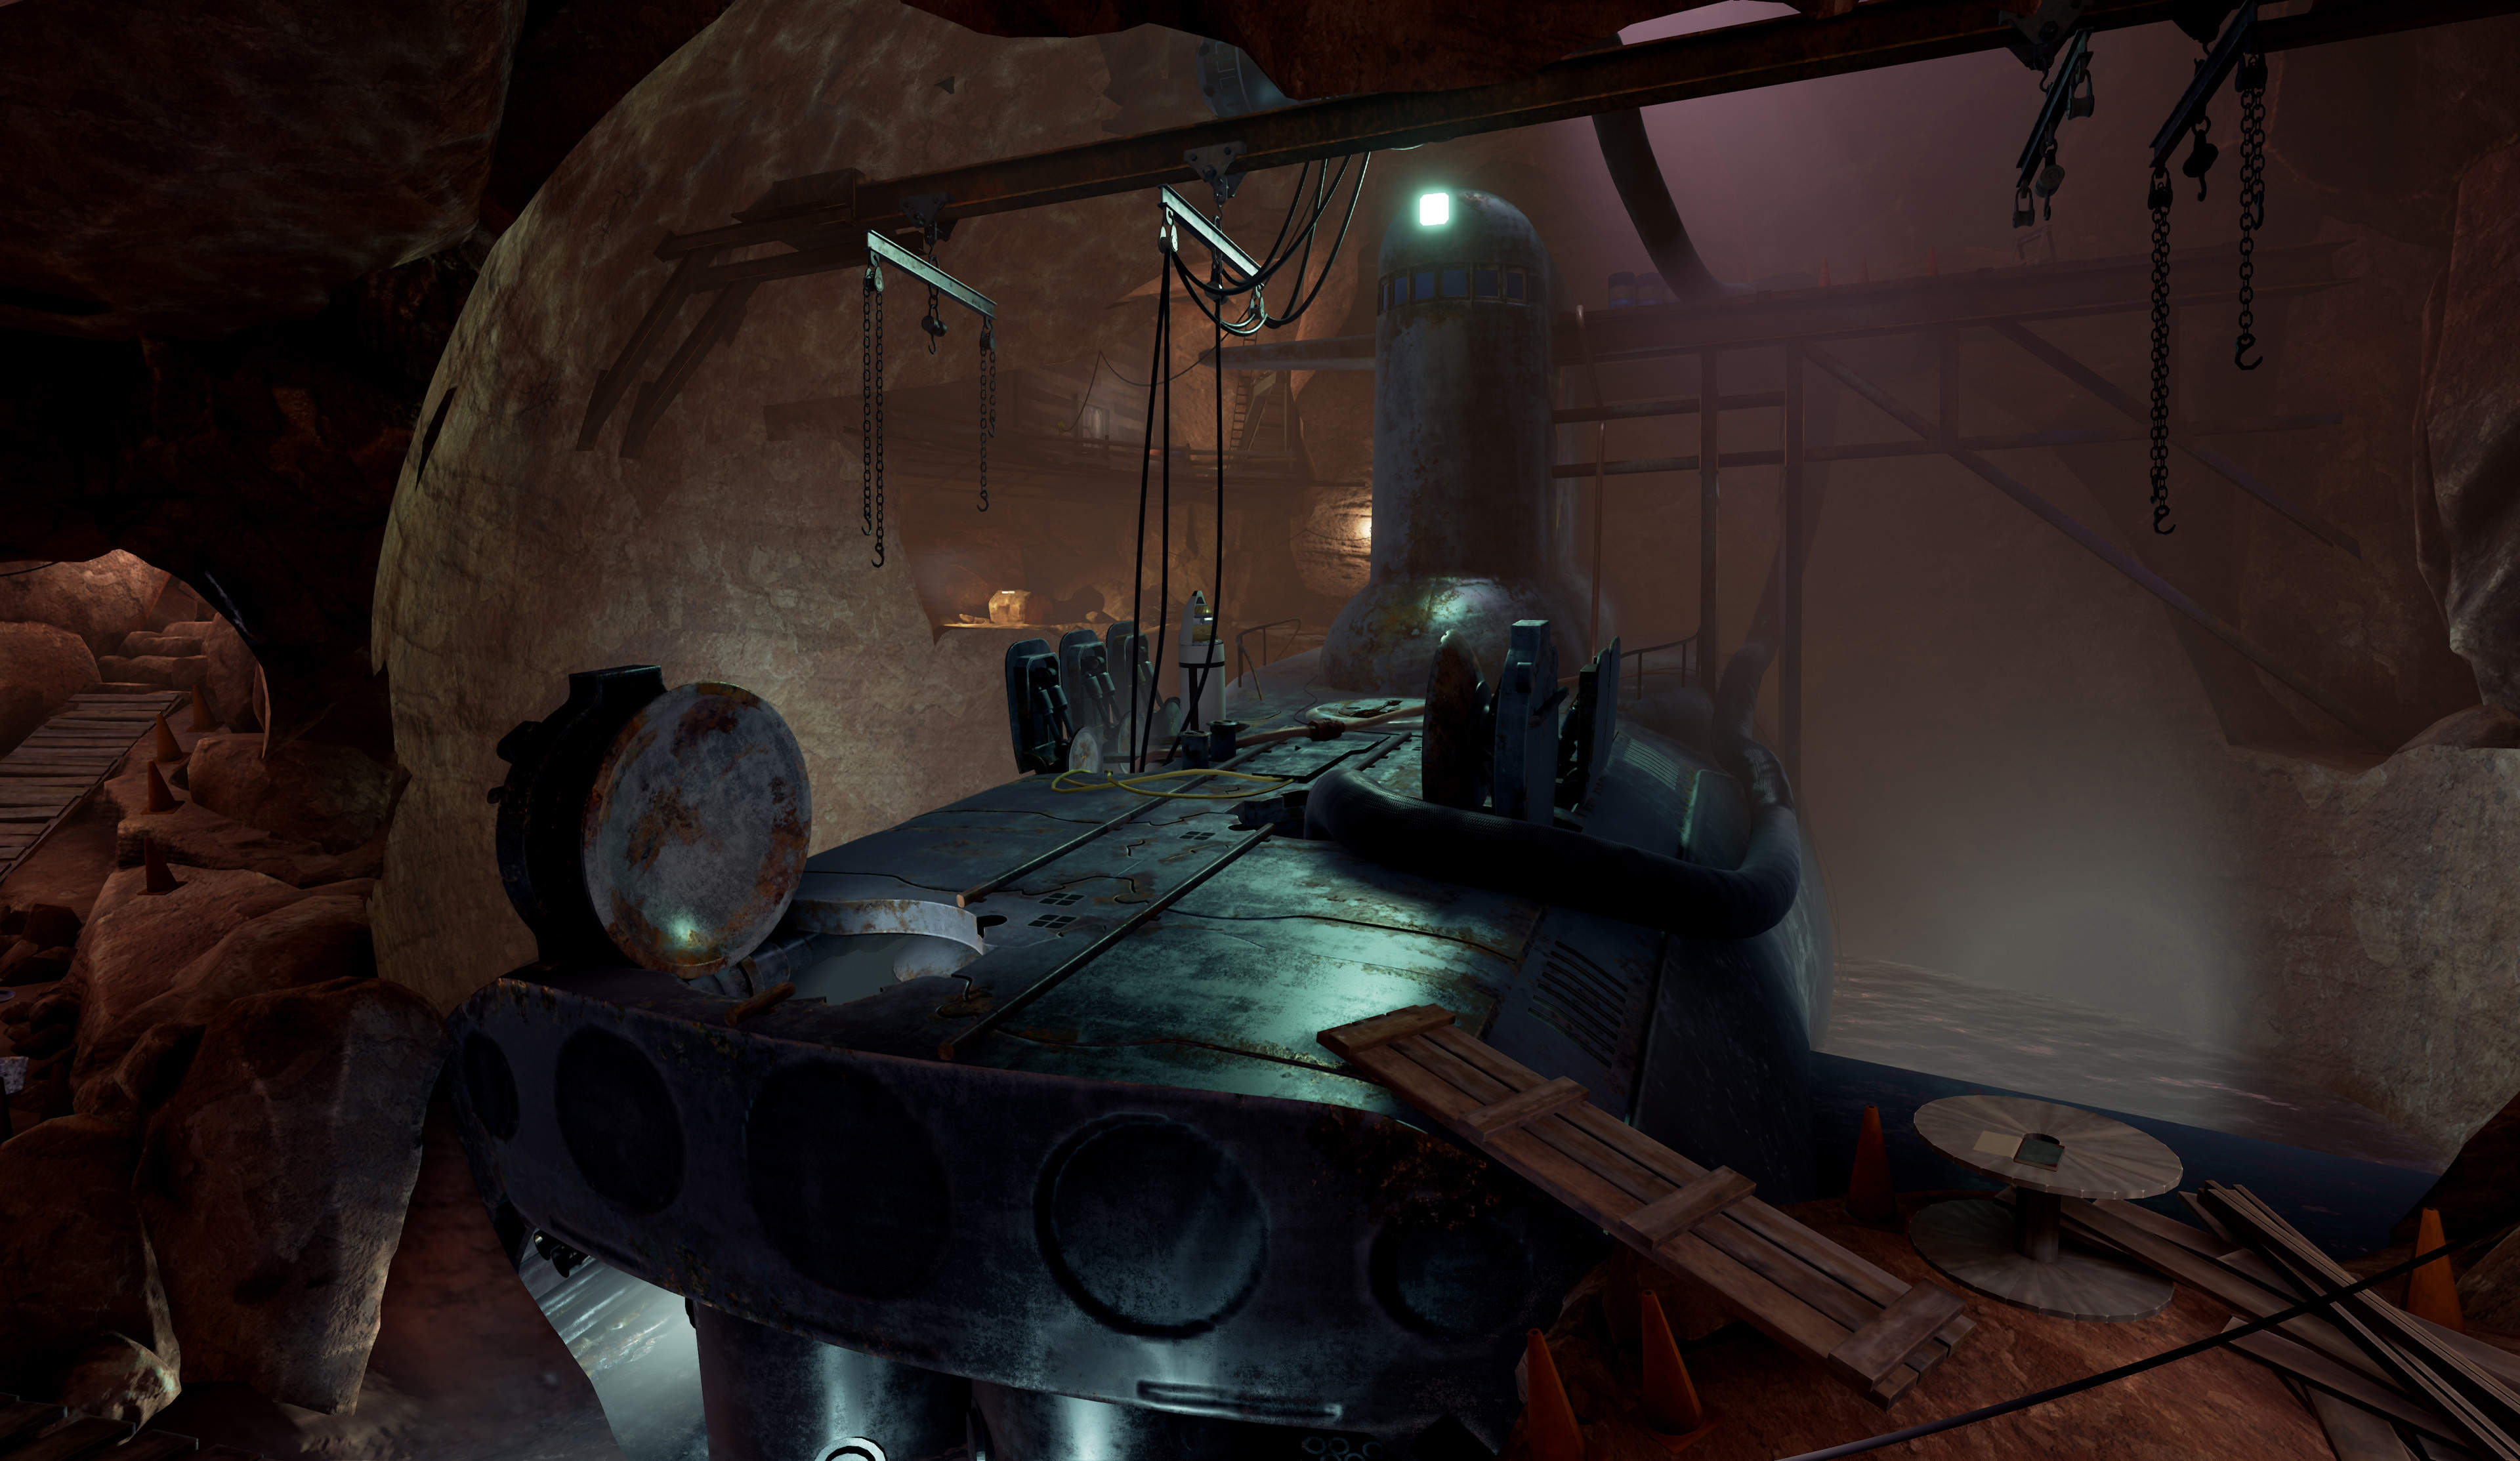 Hunrath - Submarine Cave  I was responsible for the second pass blockout, modeling, materials, set dressing, and lighting for the submarine cave area.